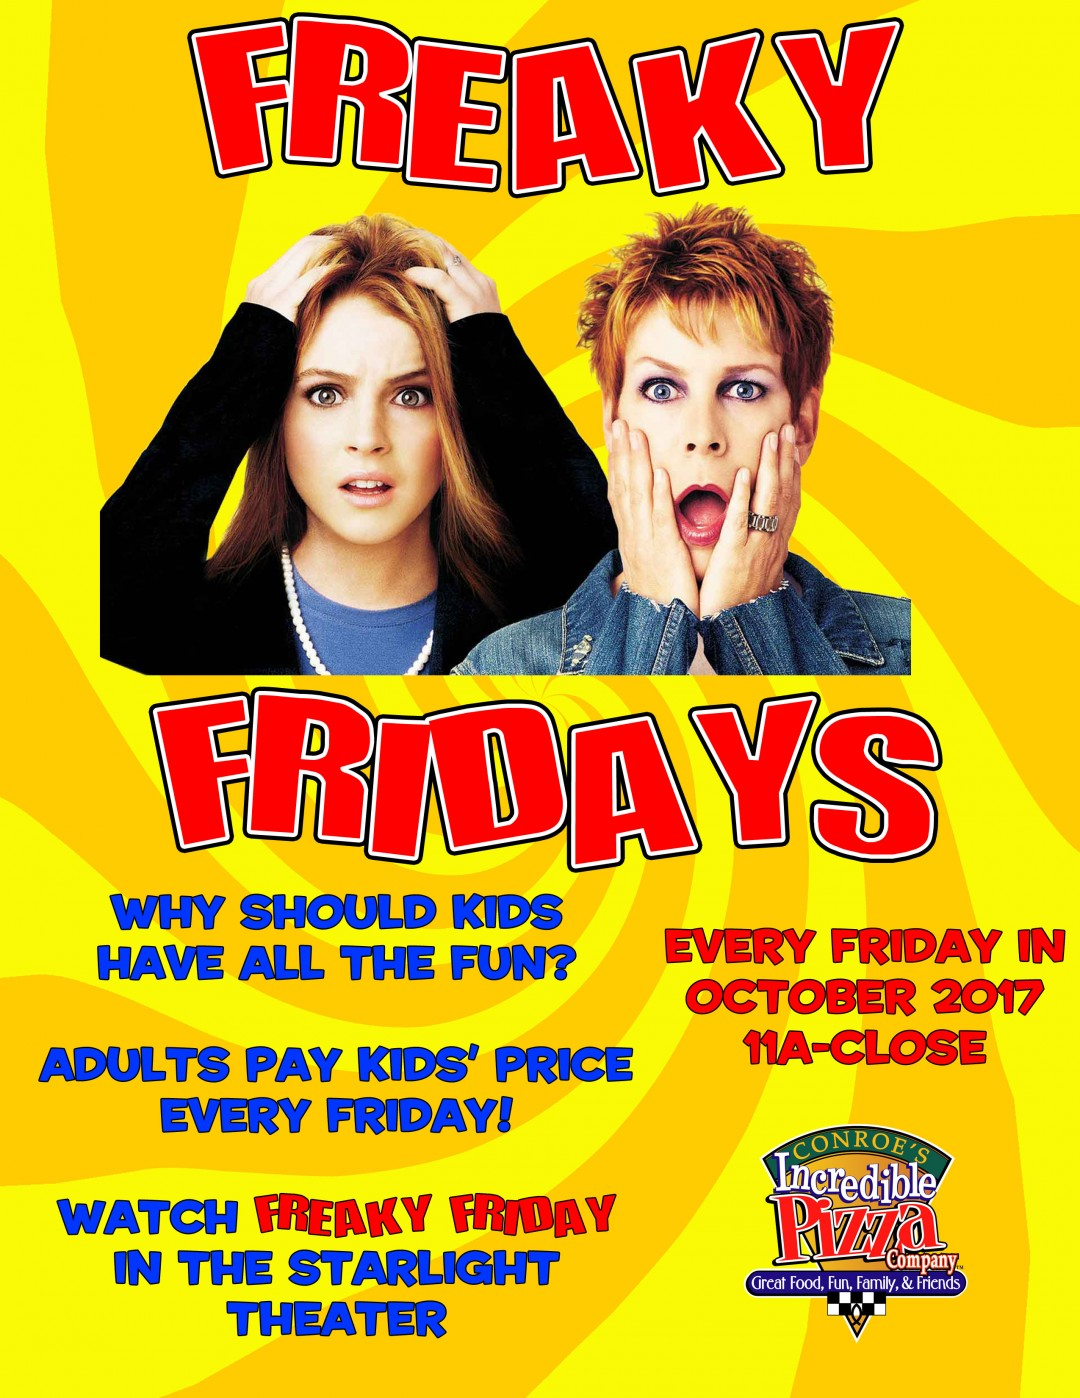 Freaky Fridays in October!